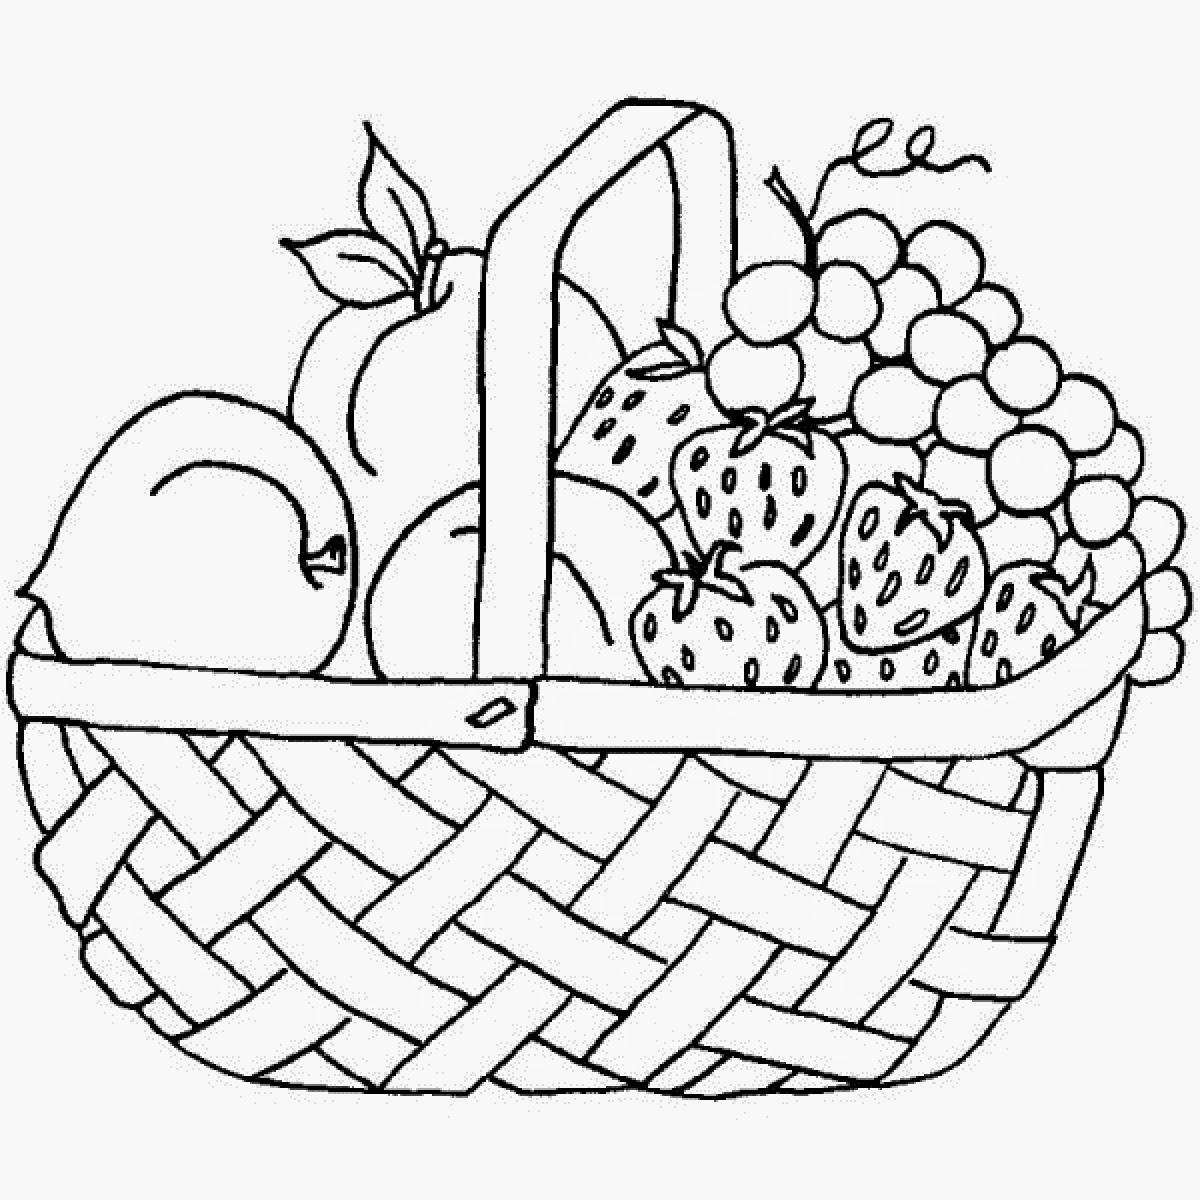 Fruit Basket Coloring Pages At Getdrawings